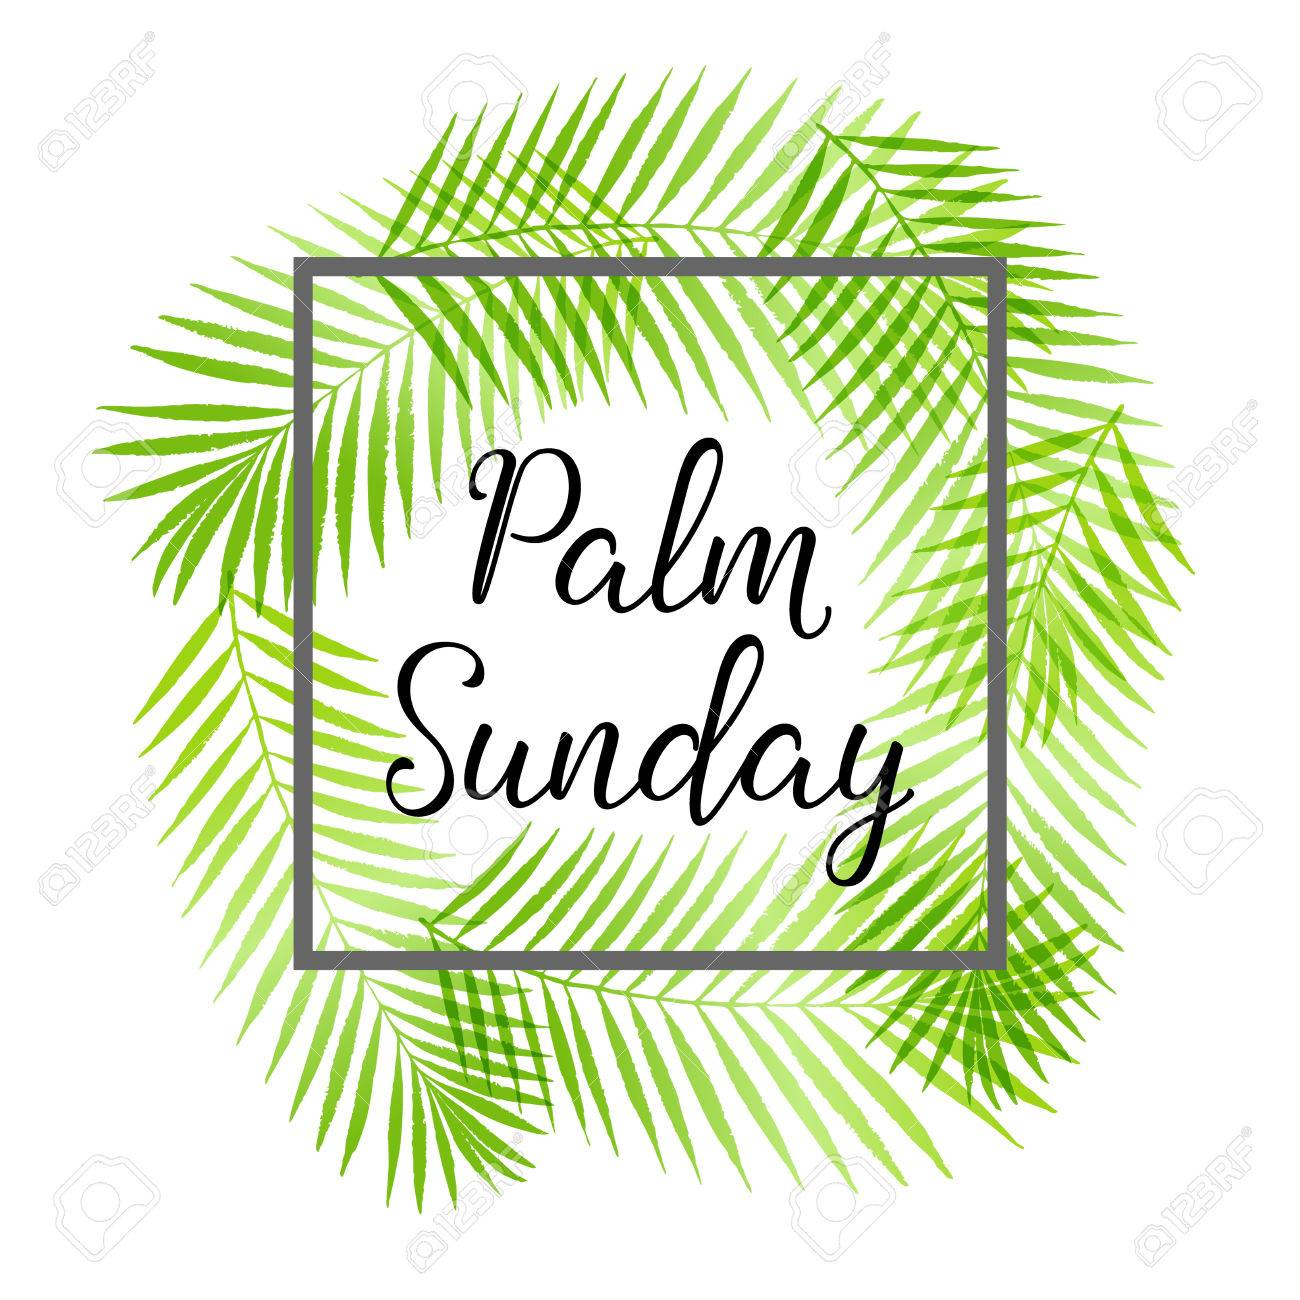 Palm Sunday holiday card, poster with palm leaves border.